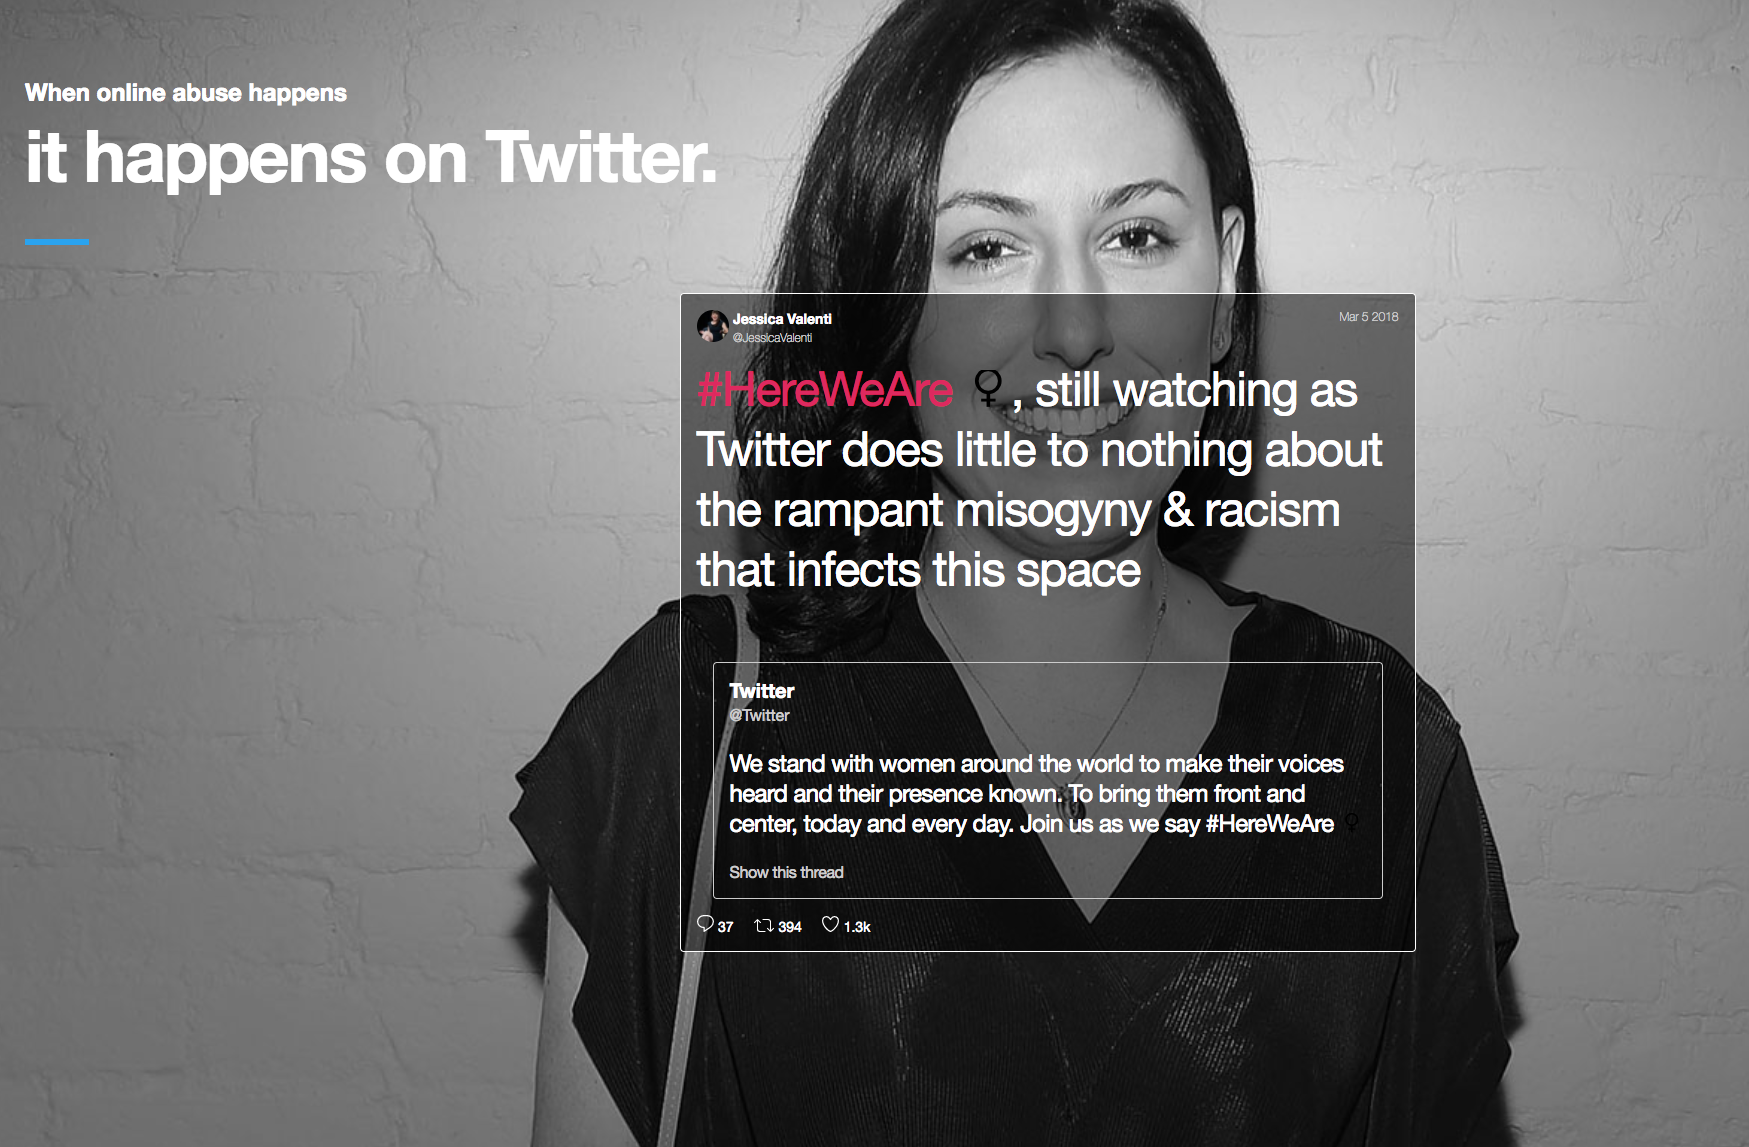 Twitter violates womens' human rights, according to Amnesty International